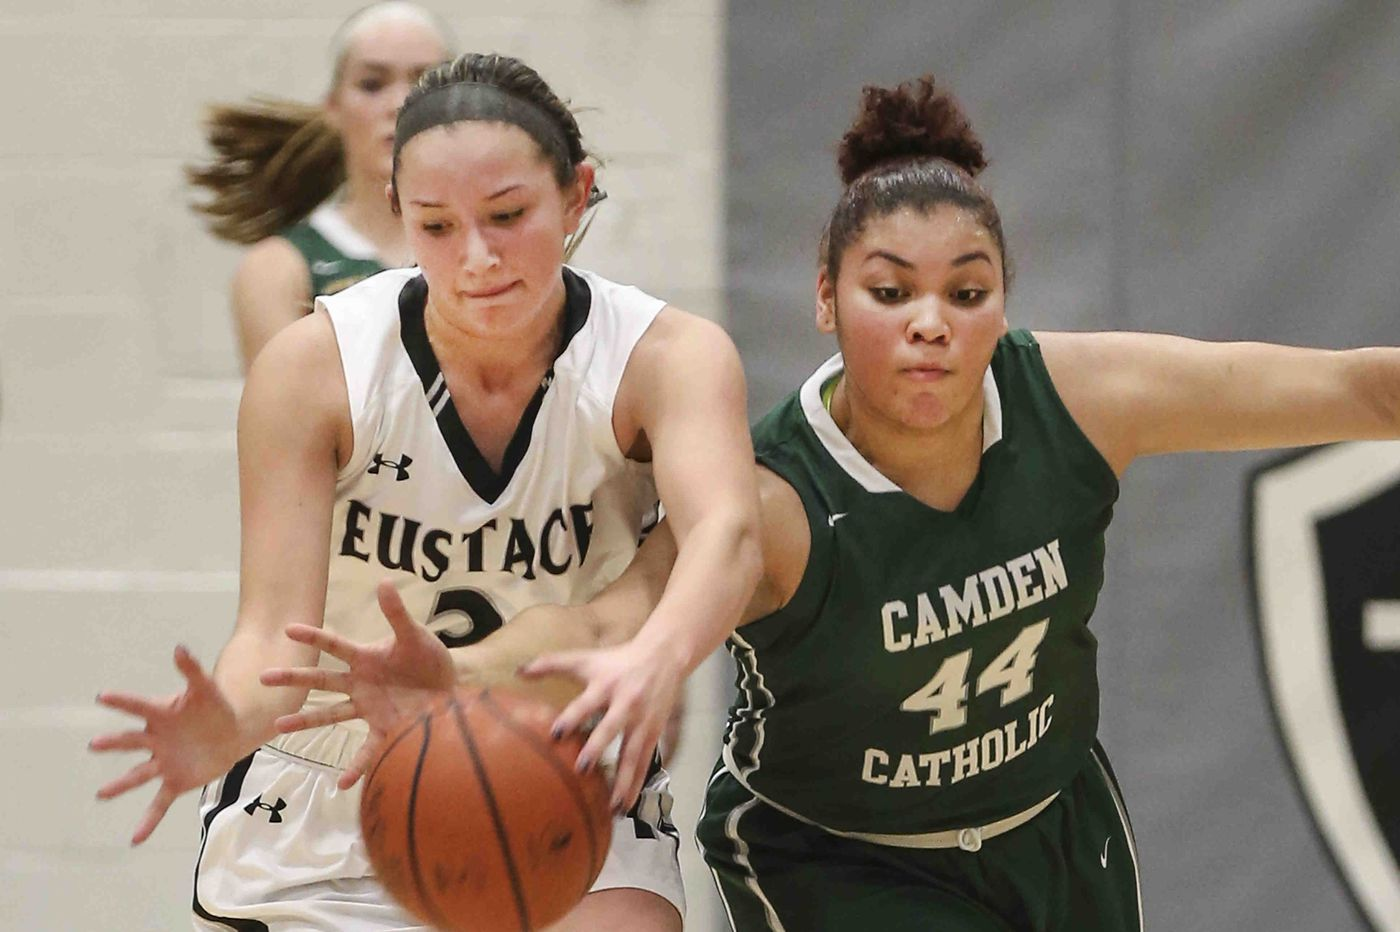 Between basketball and softball, there are few days off for Bishop Eustace star Lauren Punk